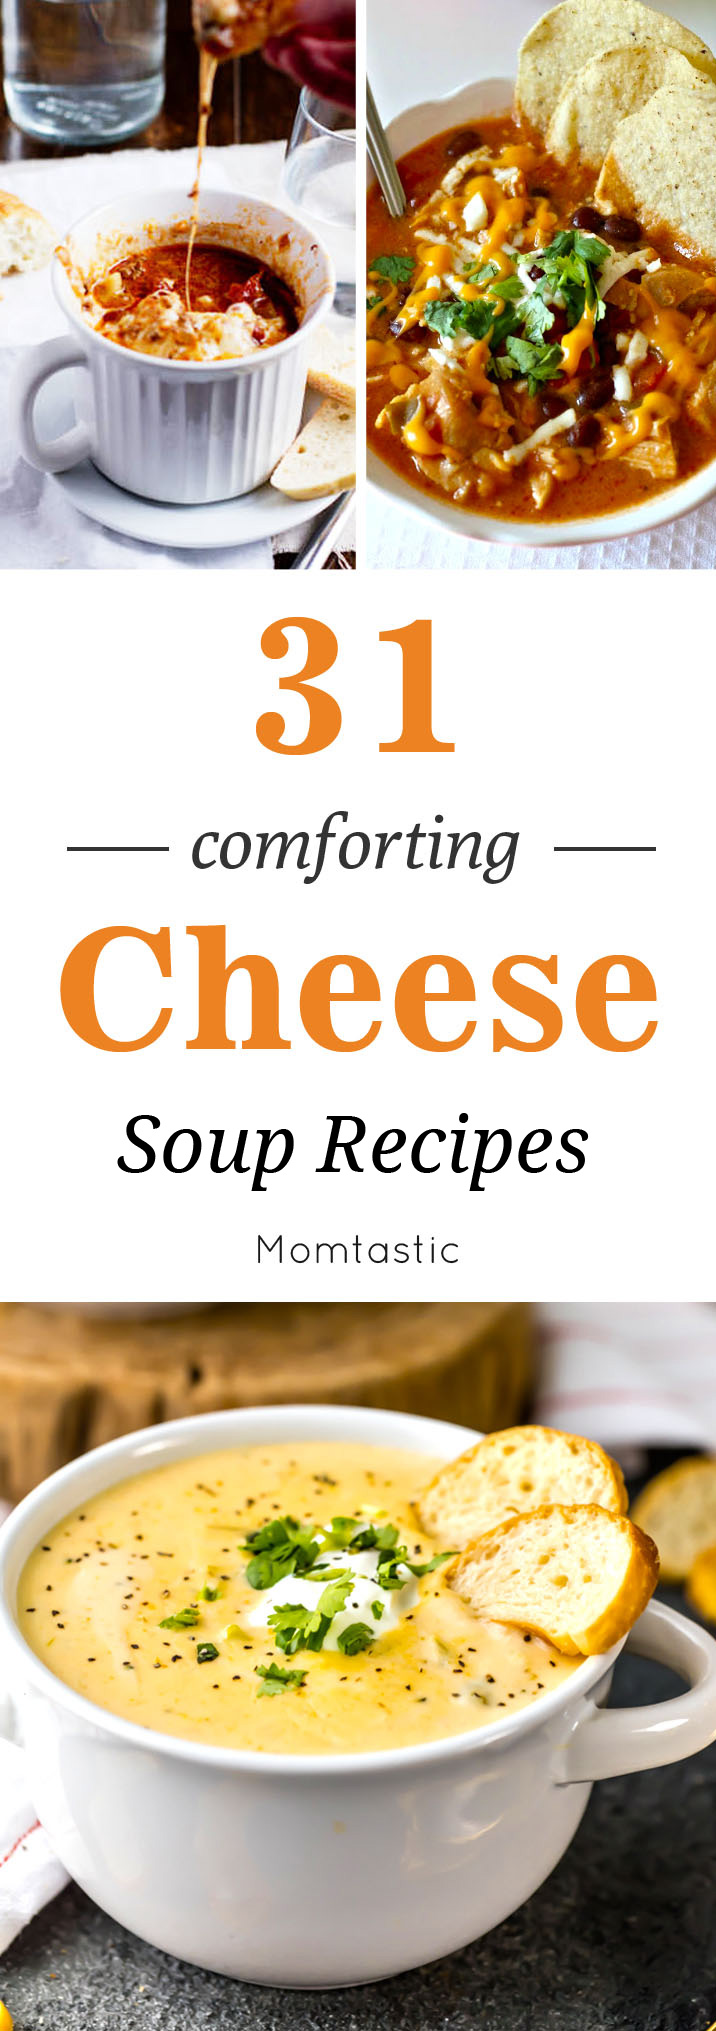 31_Comforting_cheese_soup_Recipes